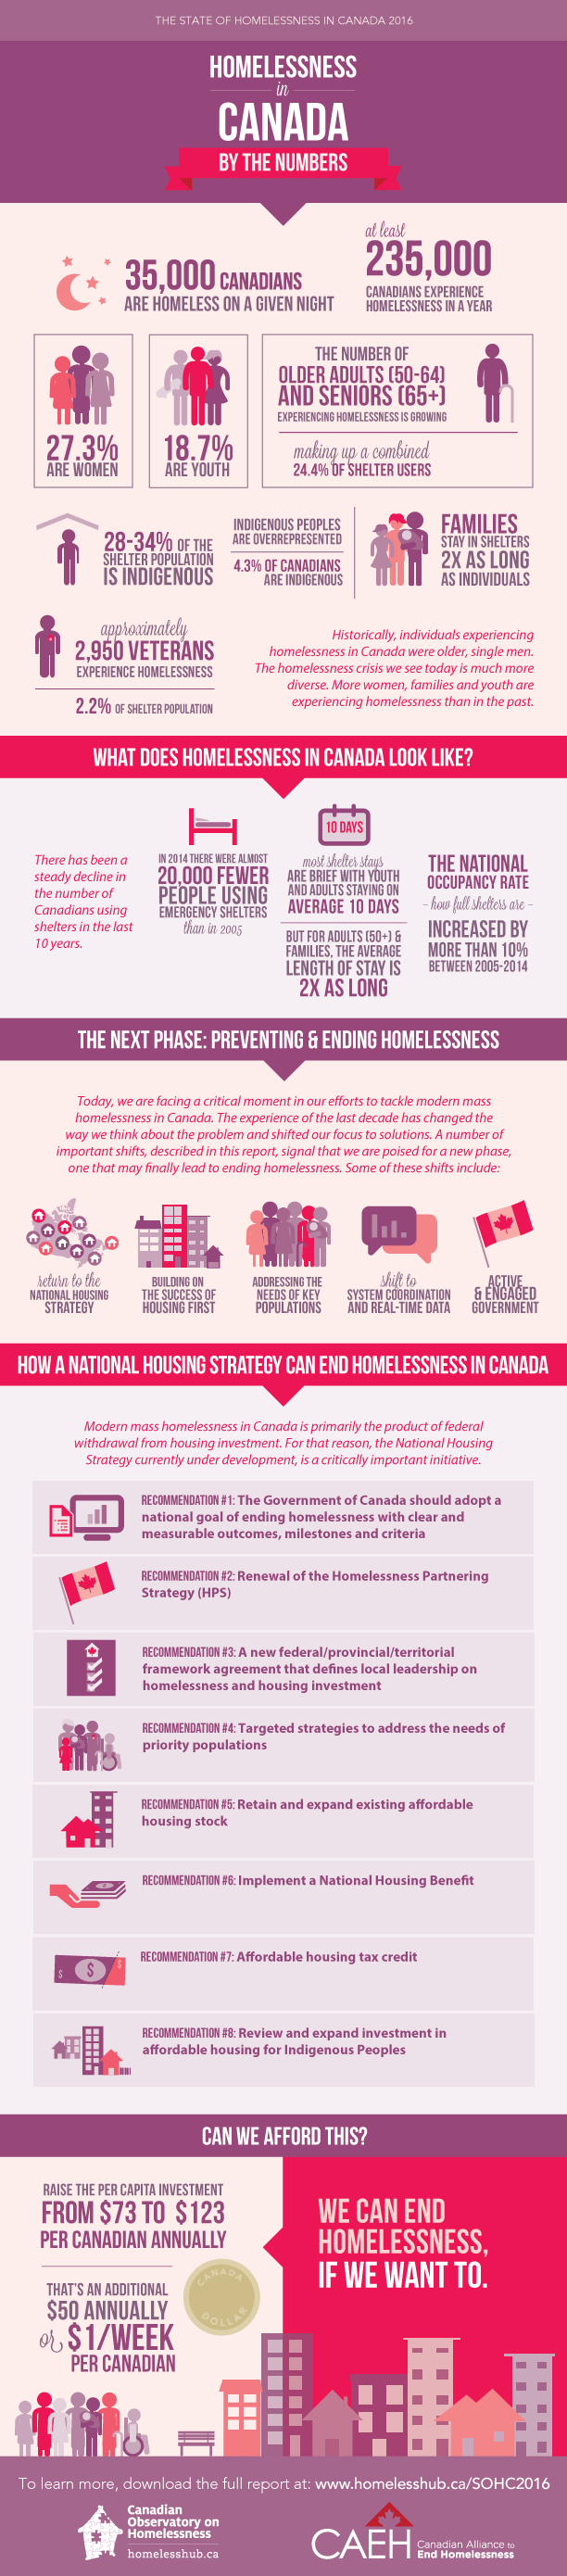 The State of Homelessness in Canada 2016 infographic